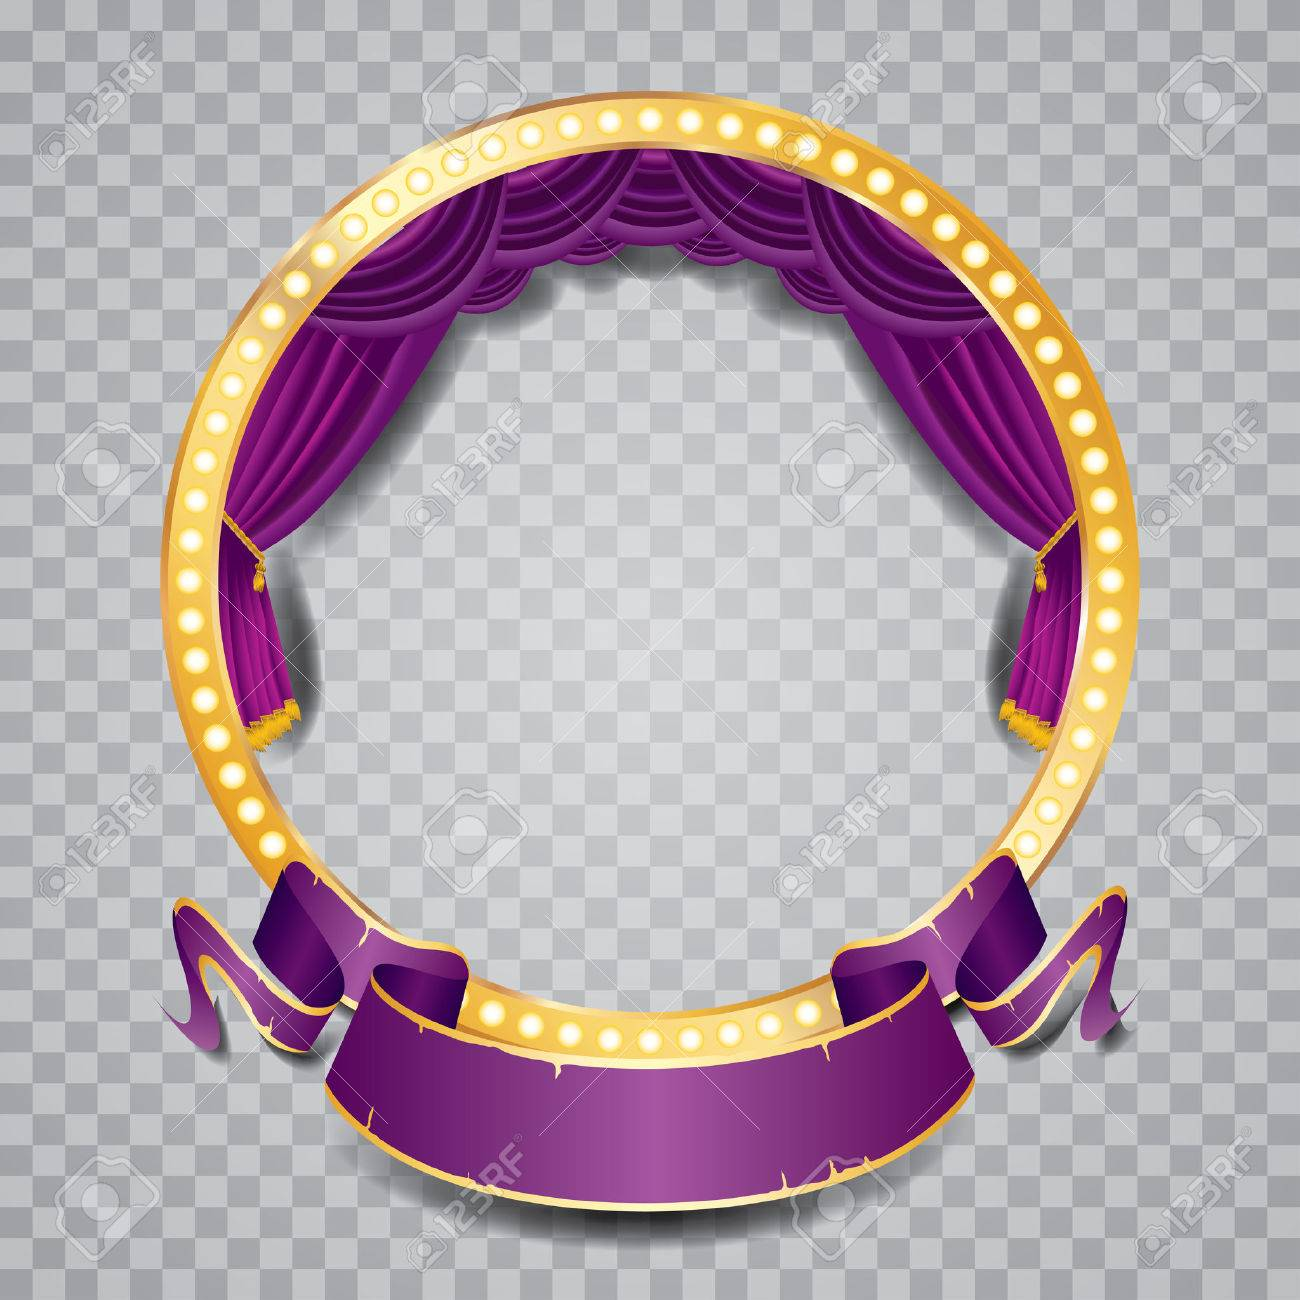 vector circle stage with purple curtain, golden frame, bulb lamps and transparent shadow - 45793606